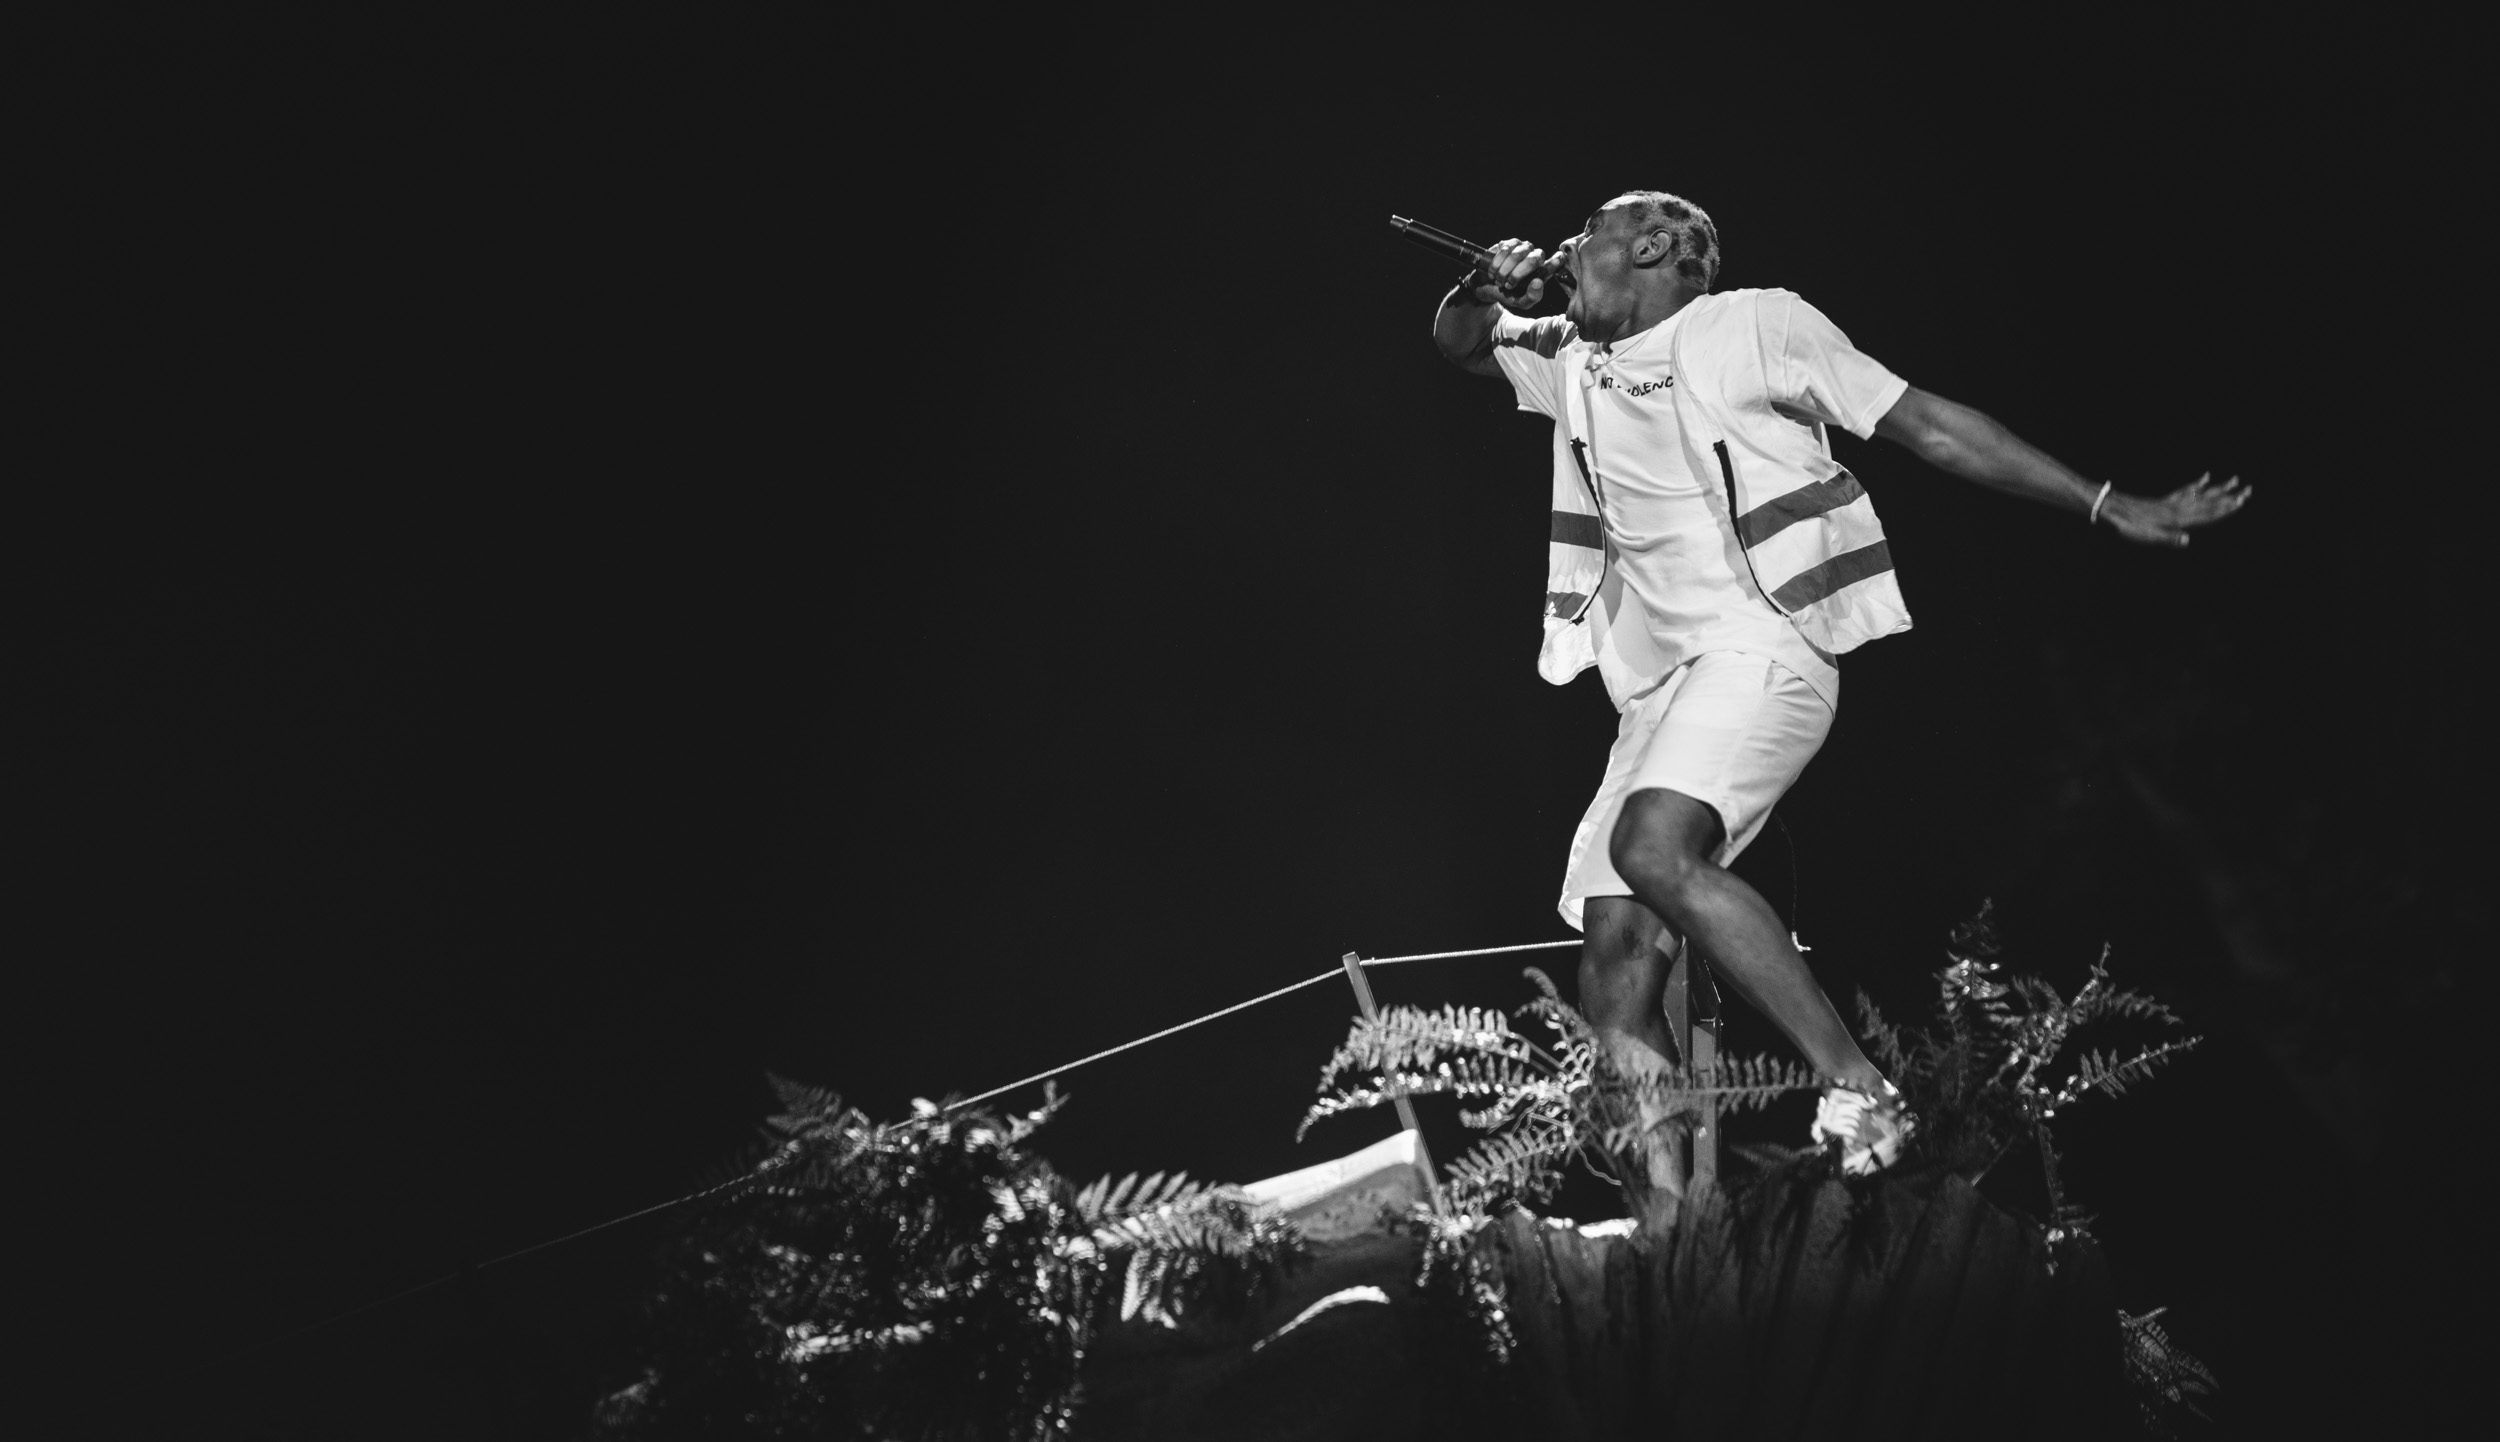 Tyler, The Creator at Coachella 2018 - photographed with a Sony a7R III - Sigma 85mm f/1.4 Art - Sigma MC‑11 Mount Converter